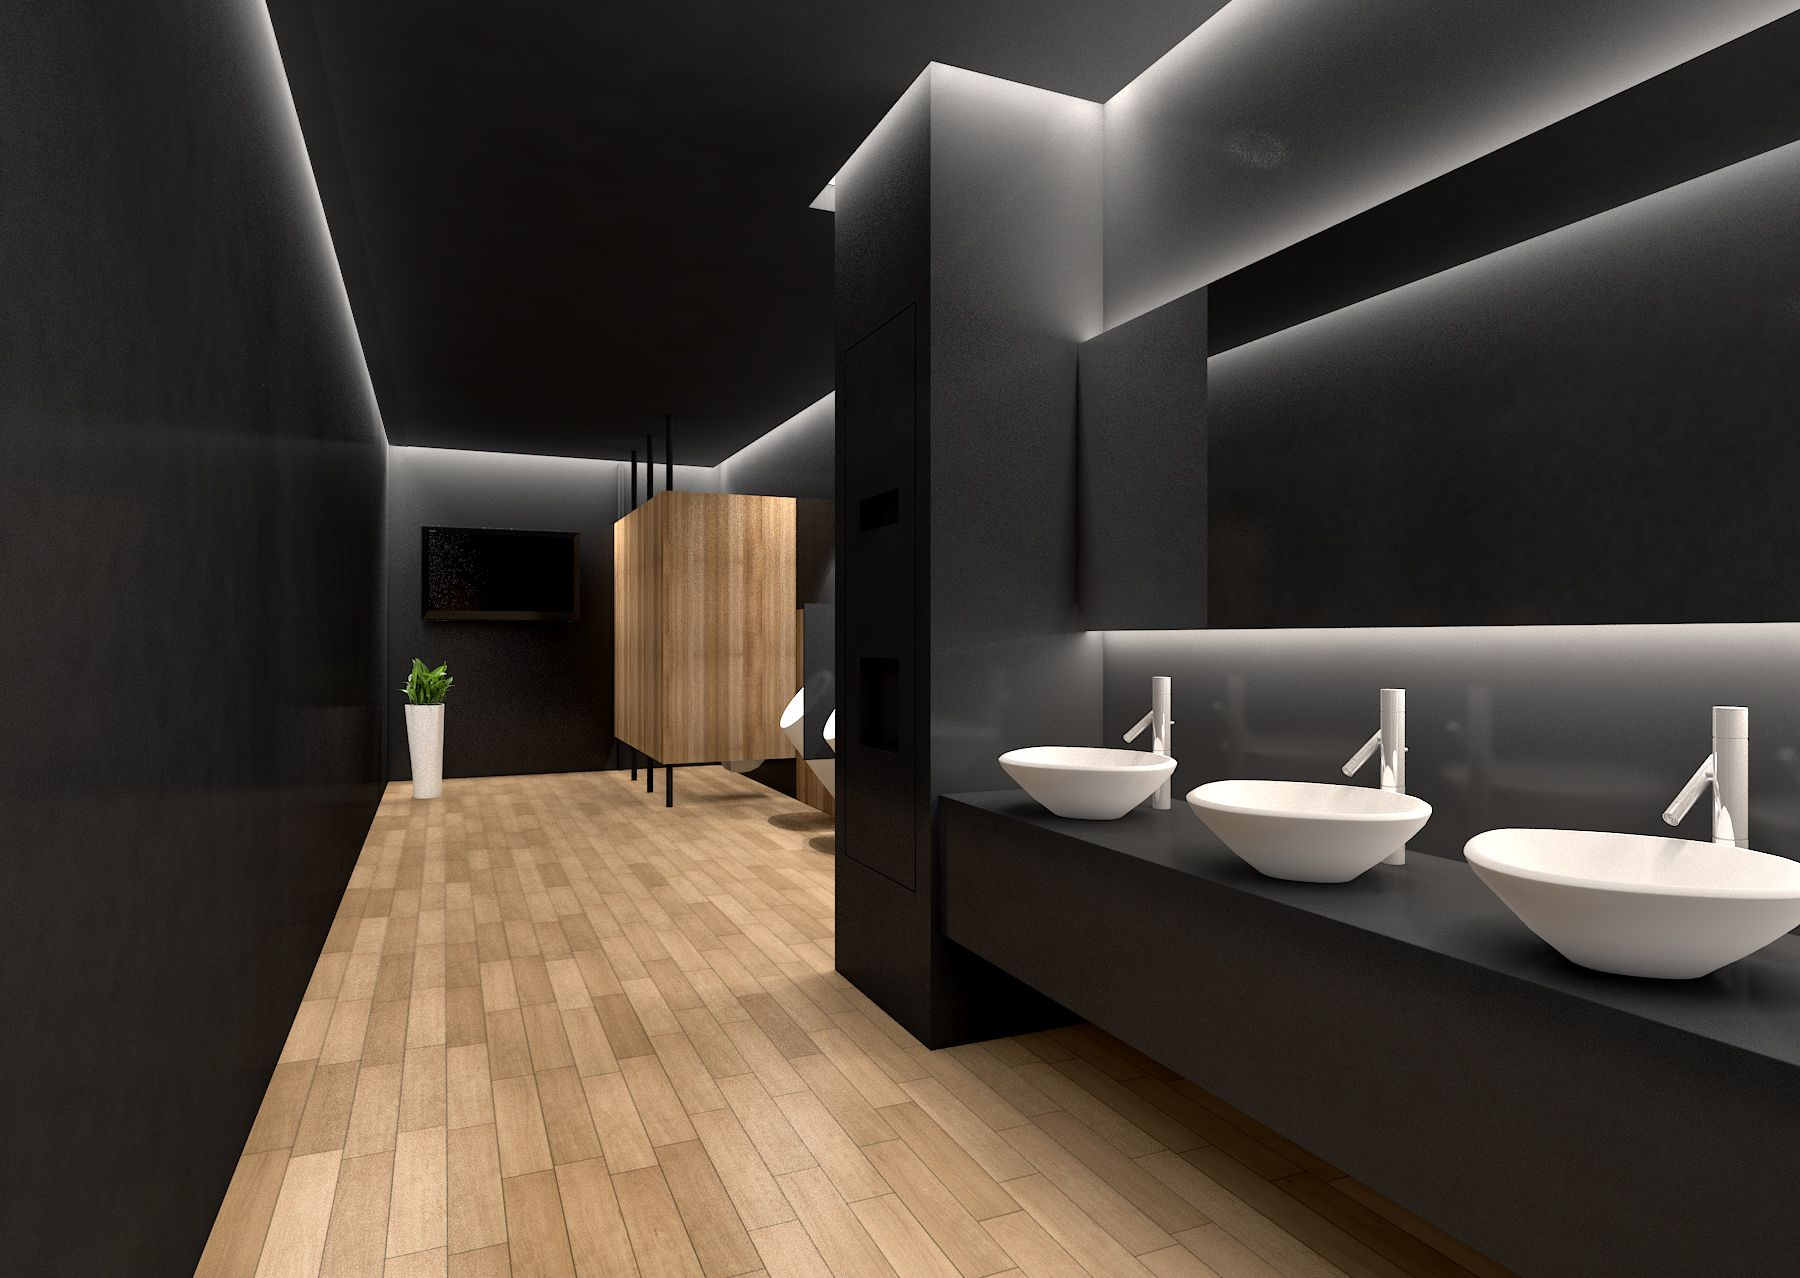 Restroom Design Pleasing Commercial Toilet Design  Google 搜尋 …  Pinteres… Design Inspiration